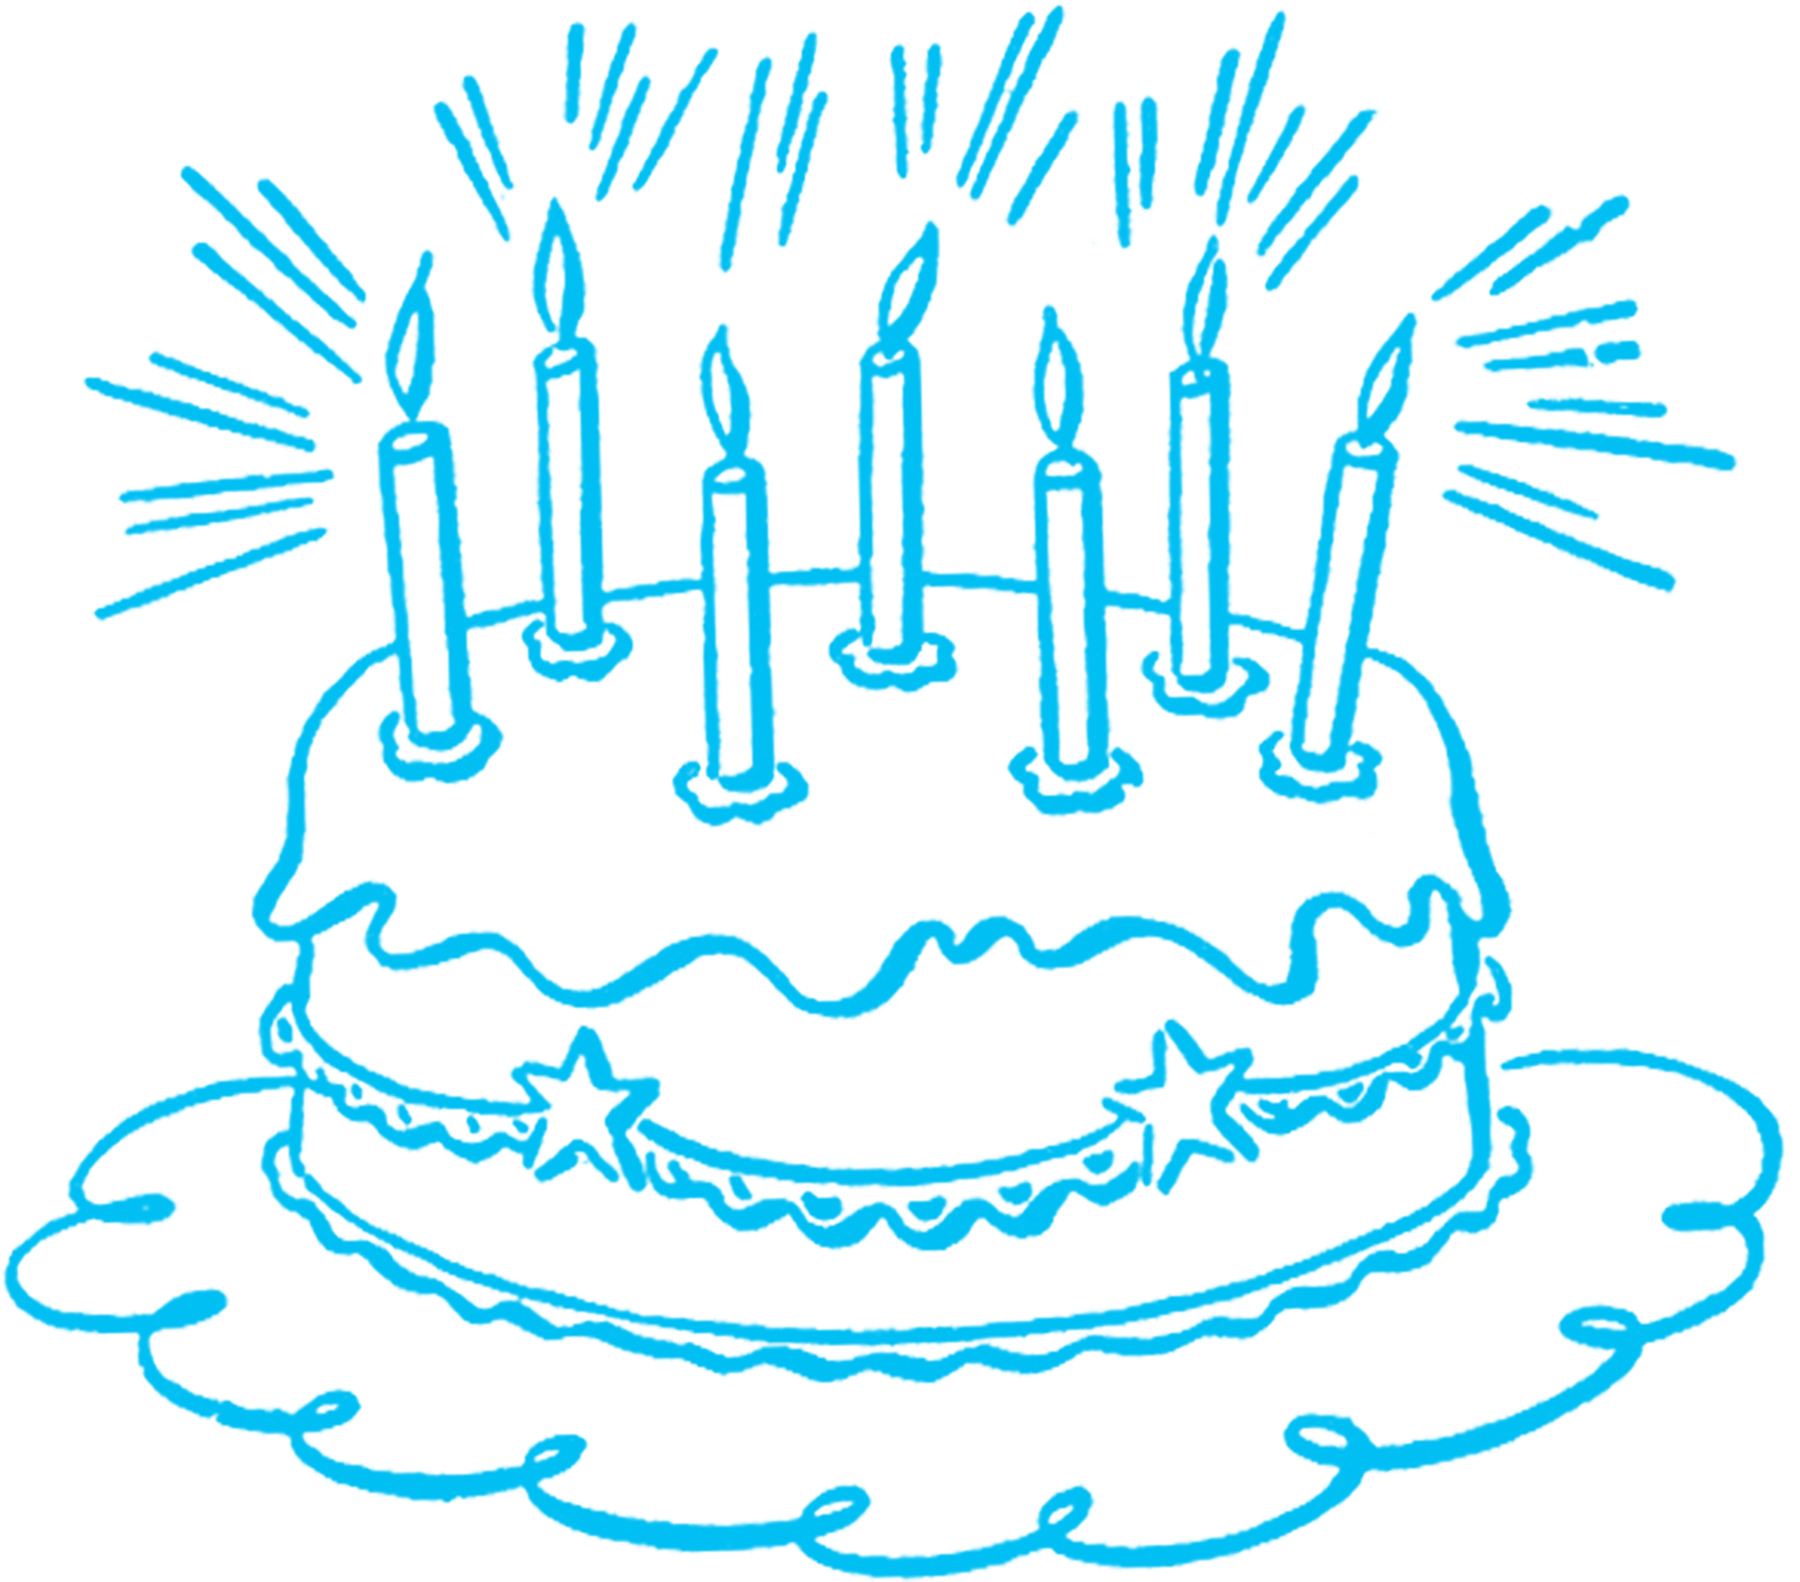 Free Birthday Cakes Graphics, Download Free Clip Art, Free.